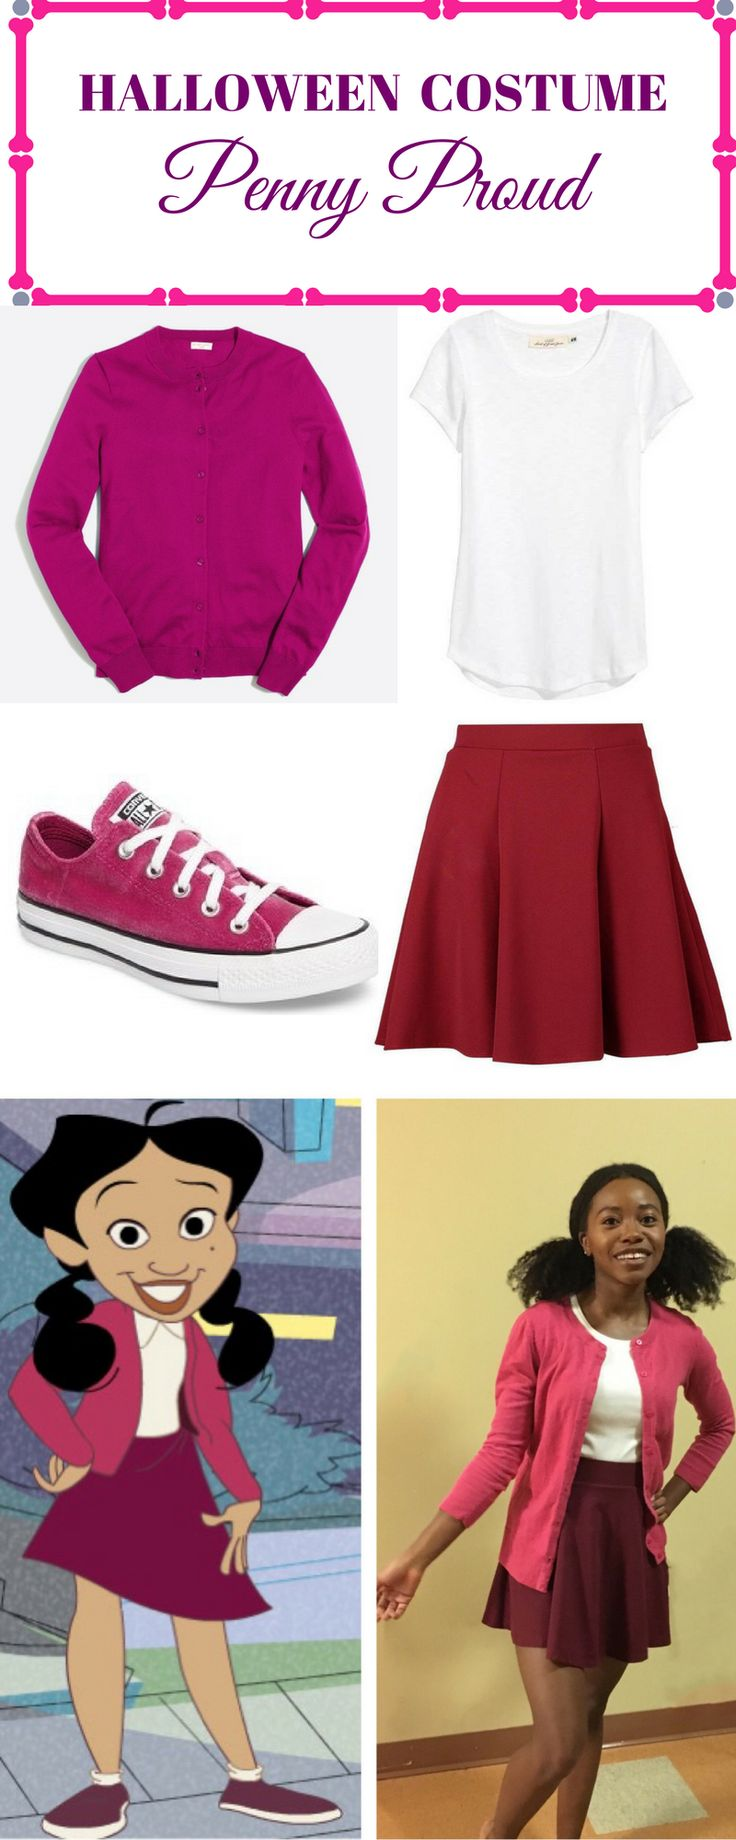 Looking for an inexpensive and fun Halloween costume that will take 20 somethings back to their childhood. Dress up as Disney Channel's Penny Proud from the Proud Family. | Halloween costumes | Halloween costumes for women | natural hair styles | shop this look